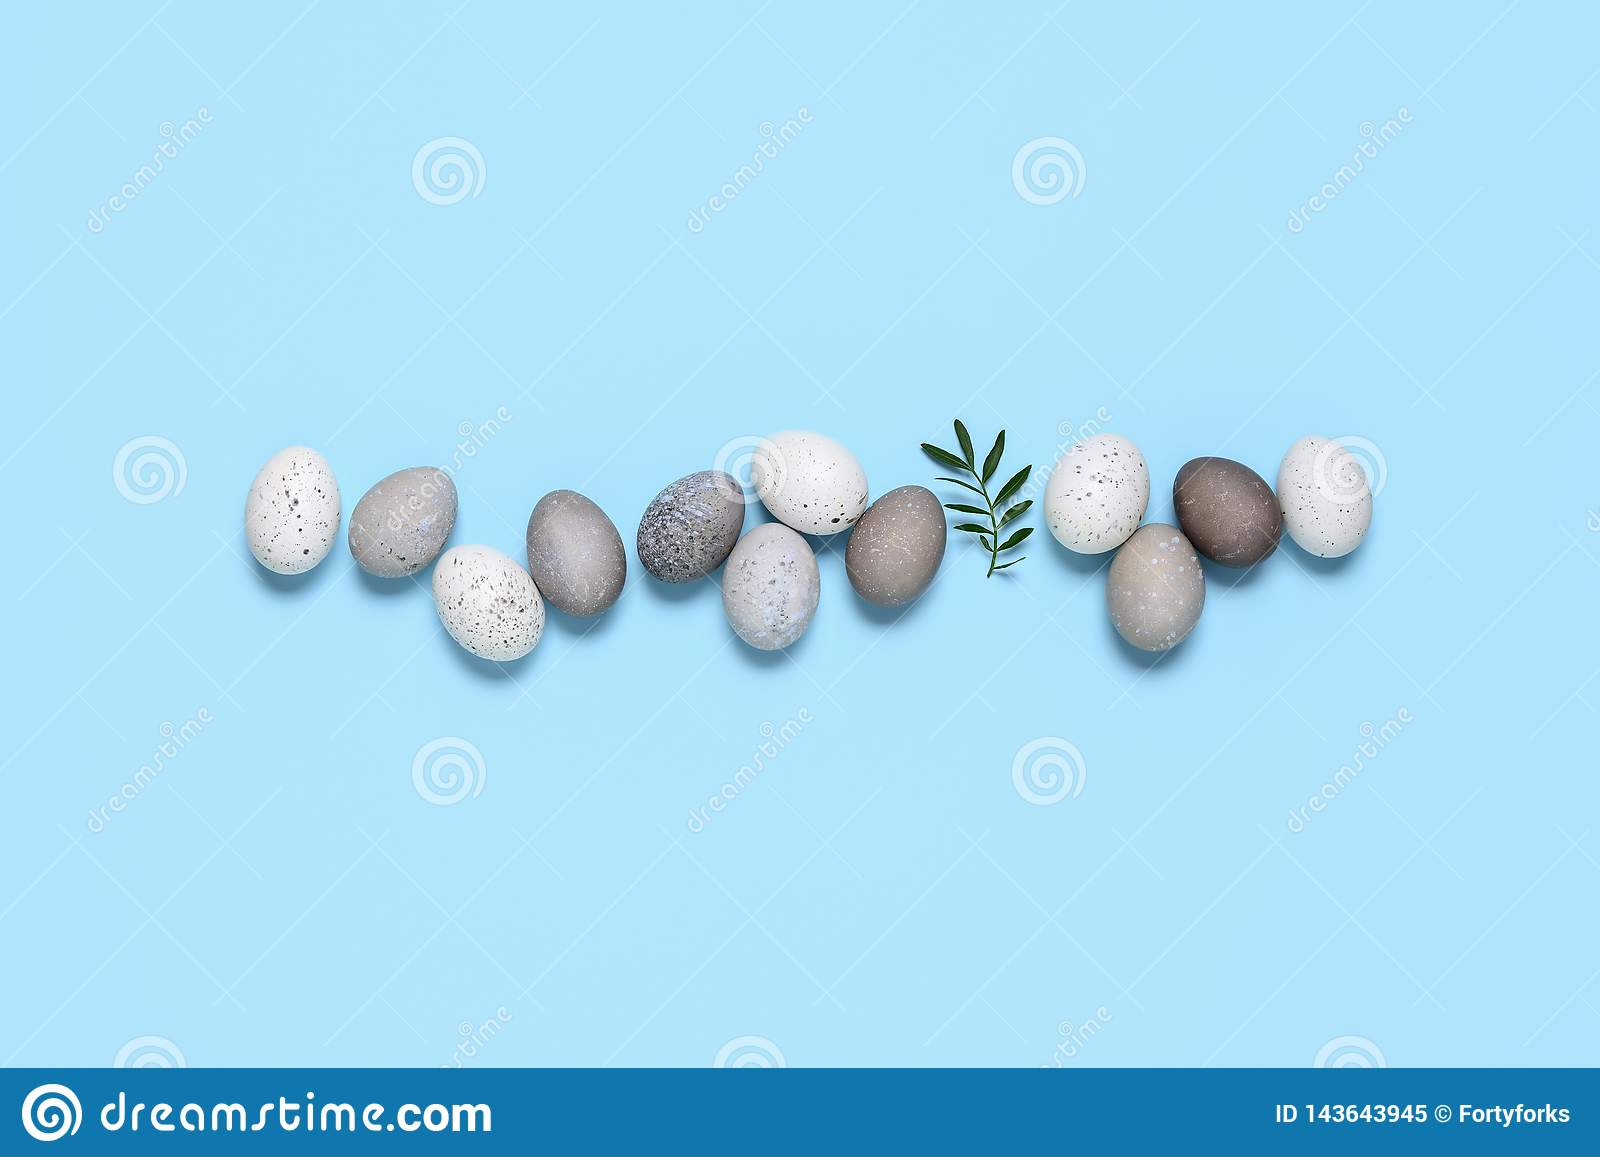 Naturally dyed Easter eggs put in line